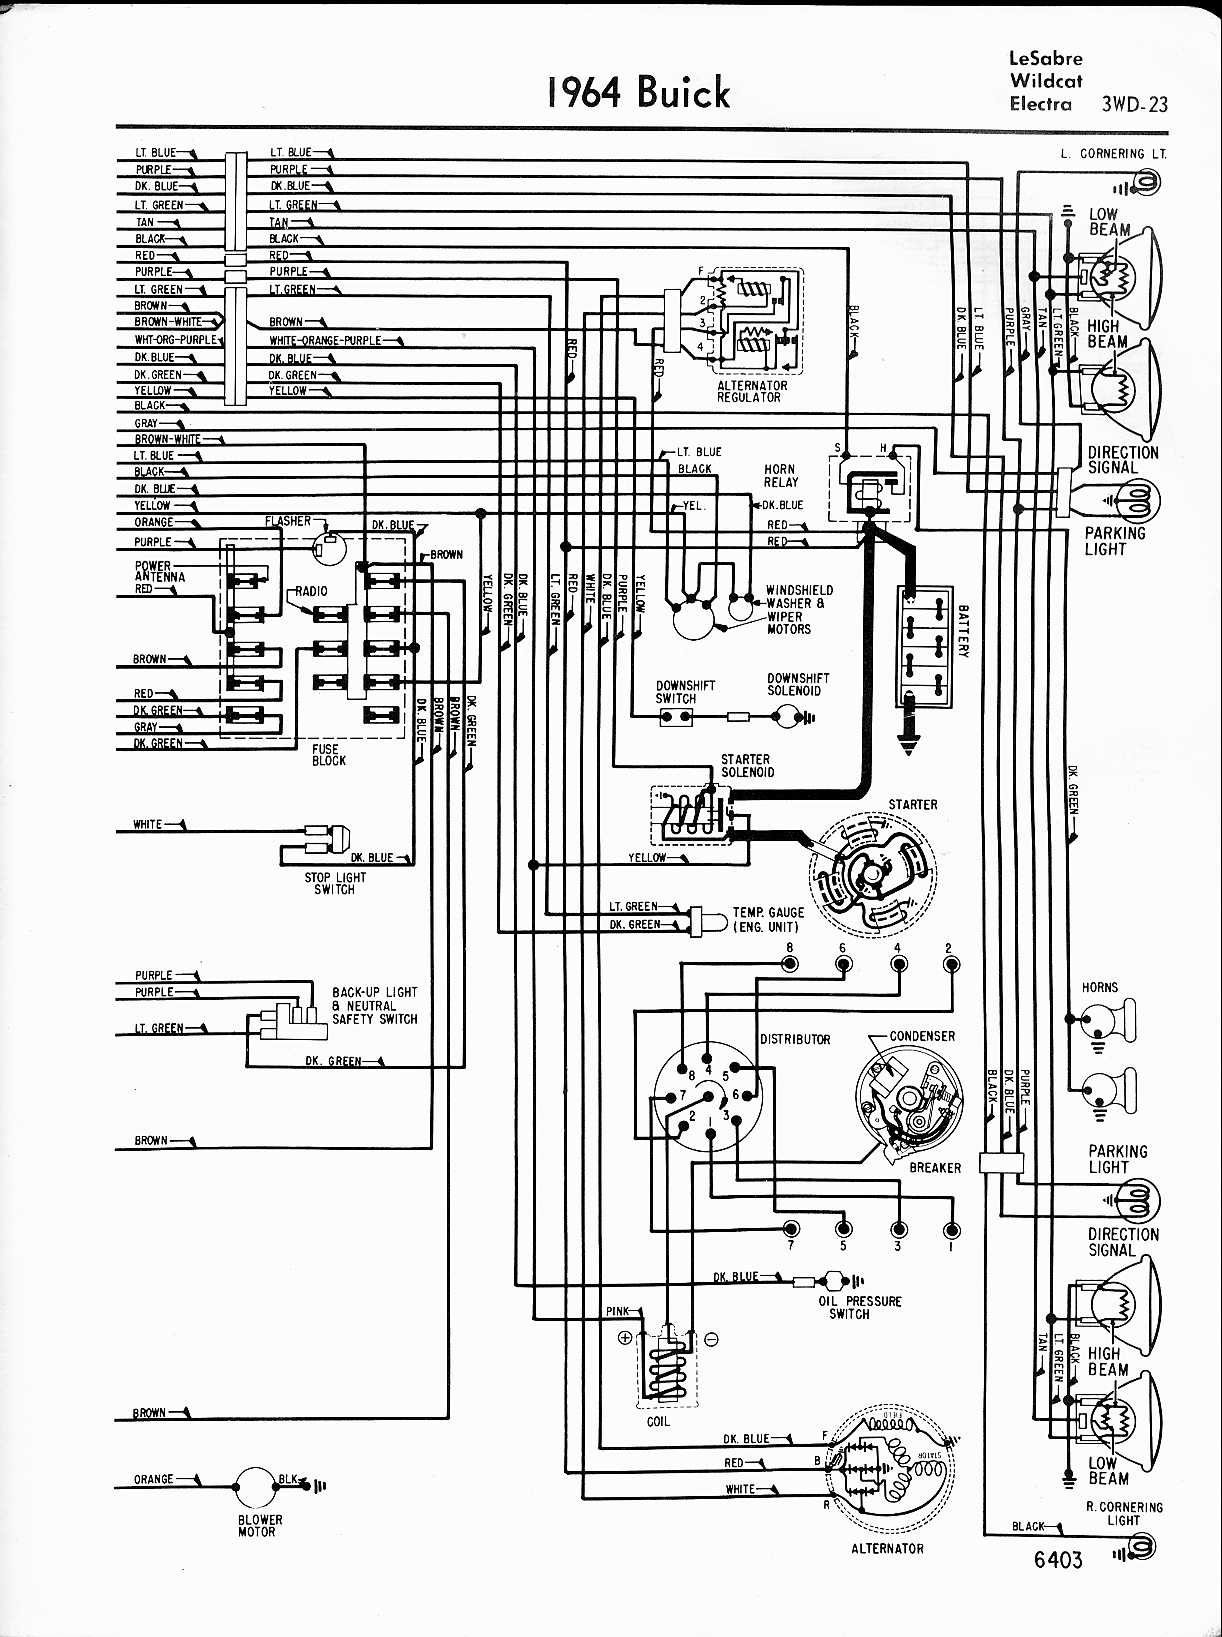 1970 gto dash wiring diagram wiring diagram database 1992 Pontiac Sunfire Wiring Schematic 2002 bmw 745li radio wiring diagram wiring library 1970 chevelle wiring schematic 1970 gto dash wiring diagram